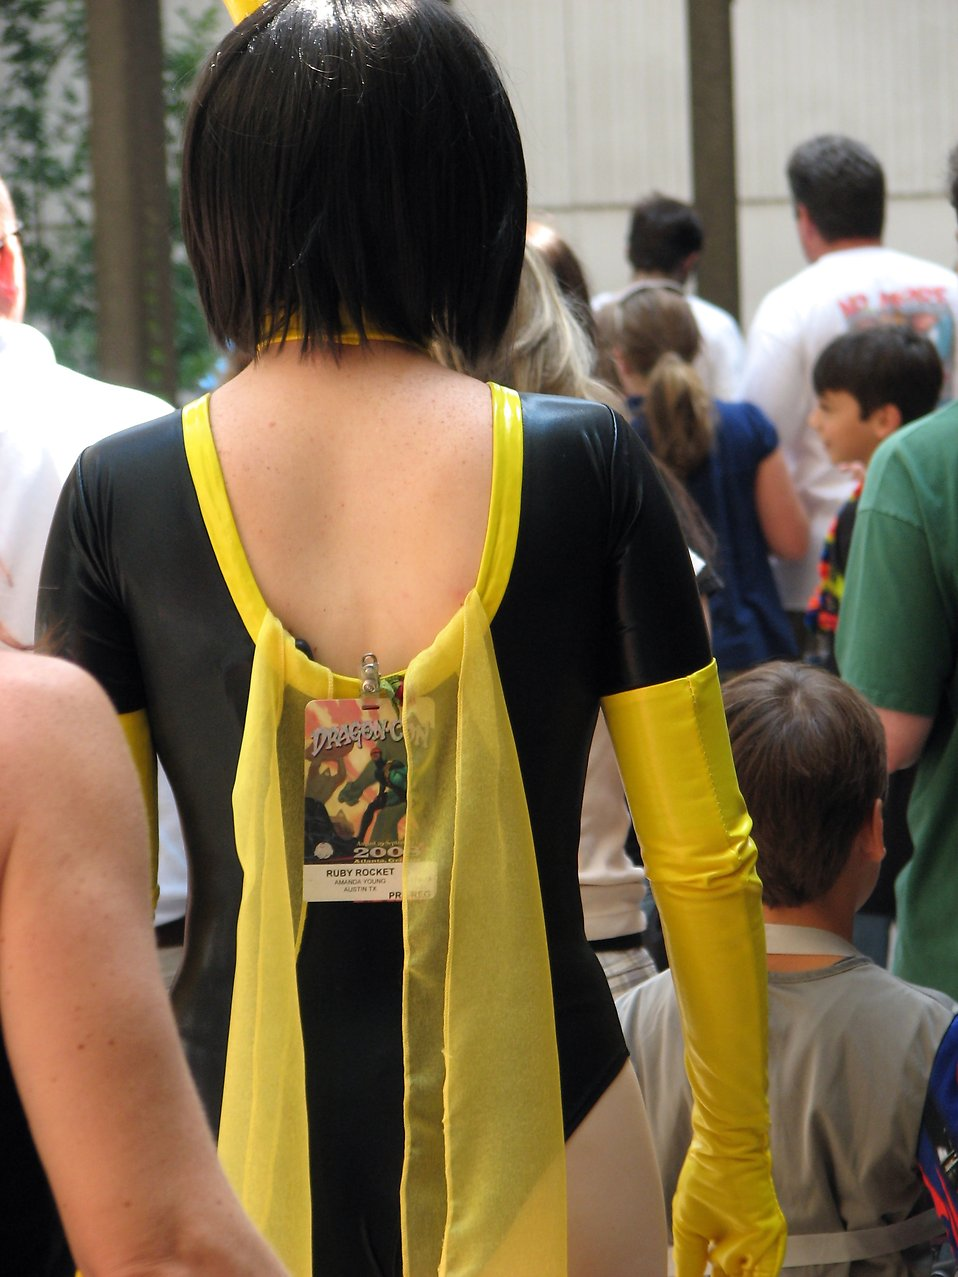 Back of beautiful girl in a costume at Dragoncon 2008 : Free Stock Photo